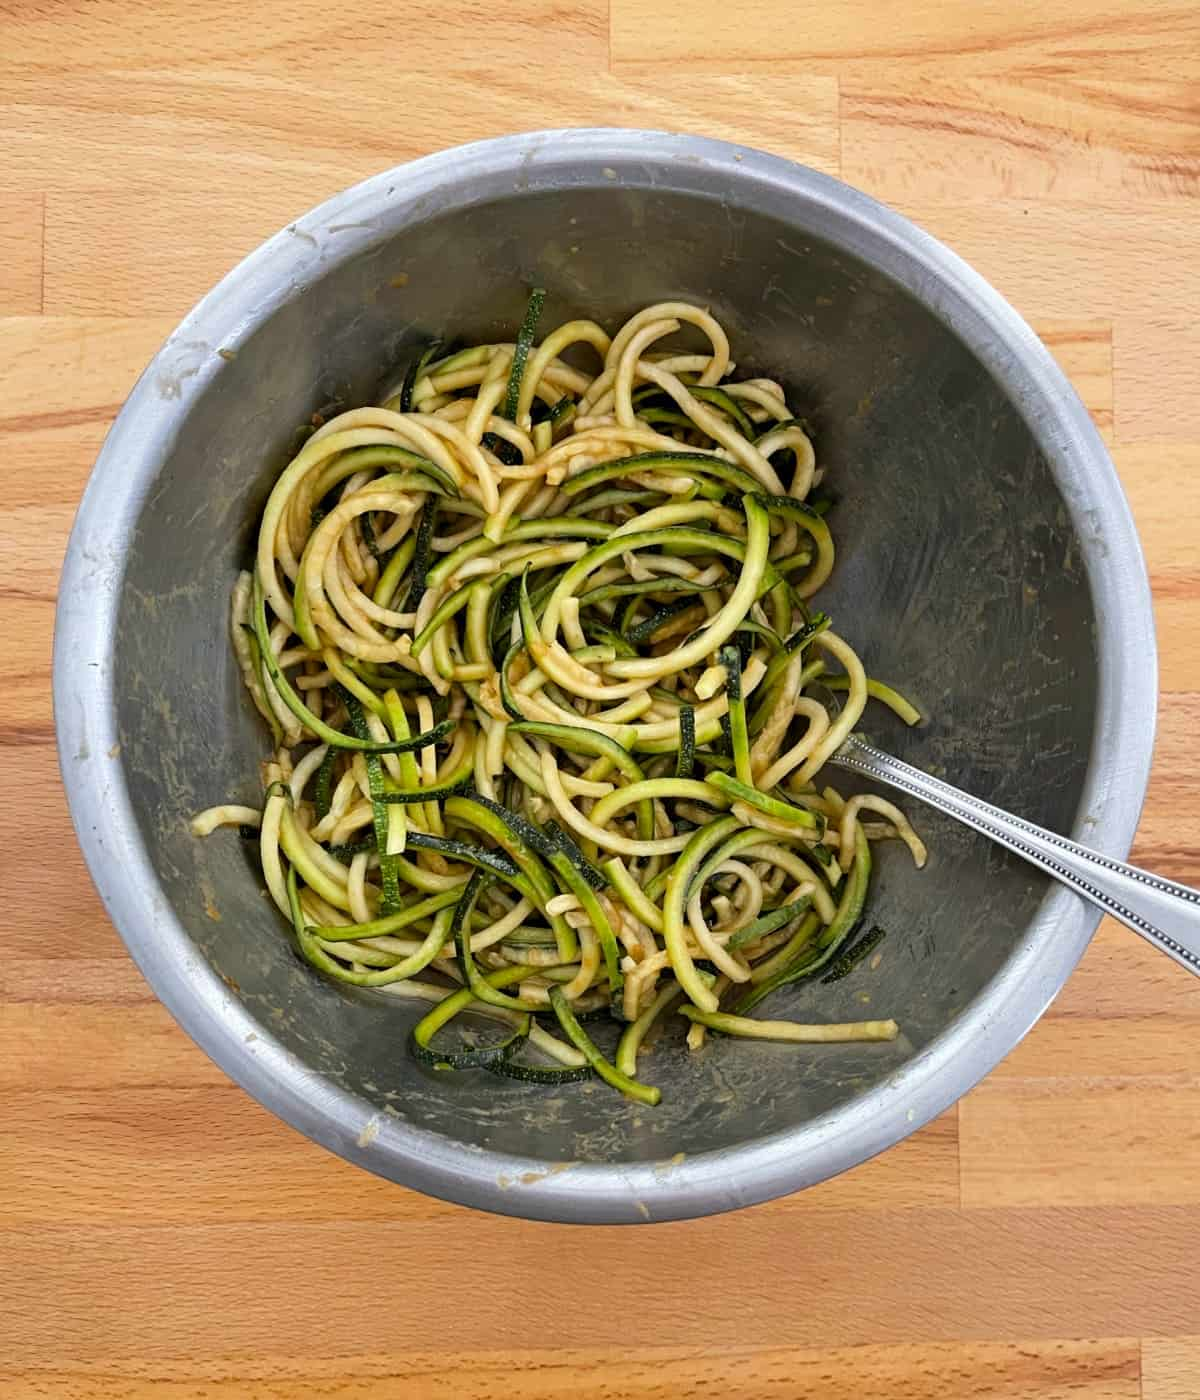 Tossing Asian-inspired sesame zucchini noodles with sauce in mixing bowl.